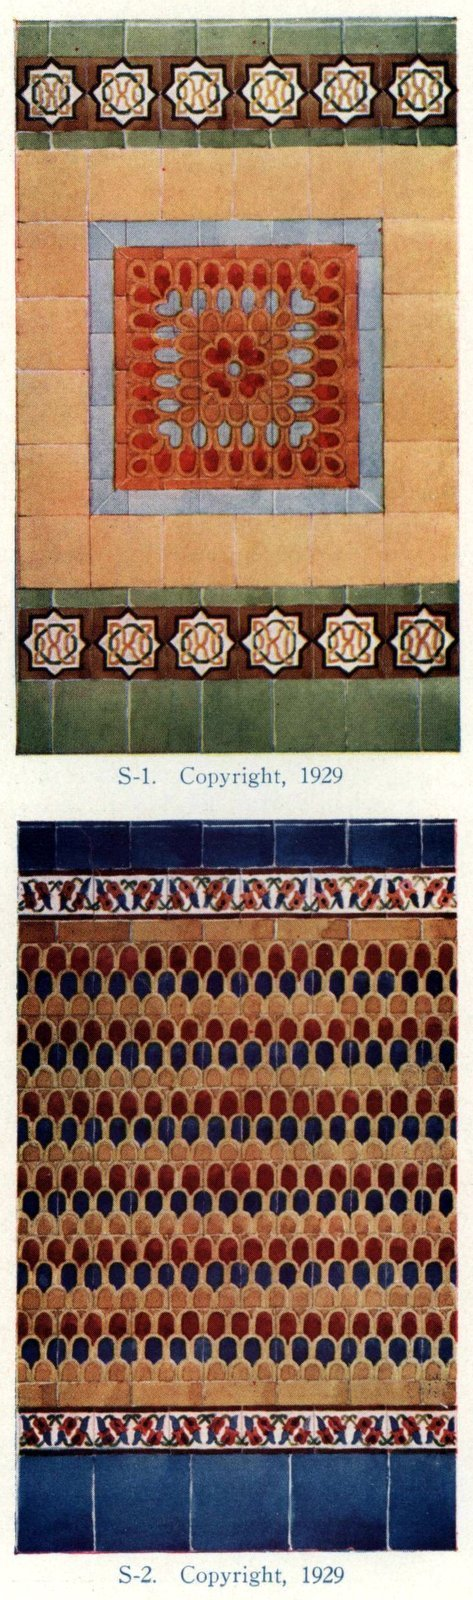 Authentic 20s tile designs and patterns from the home from 1929 at Click Americana (6)